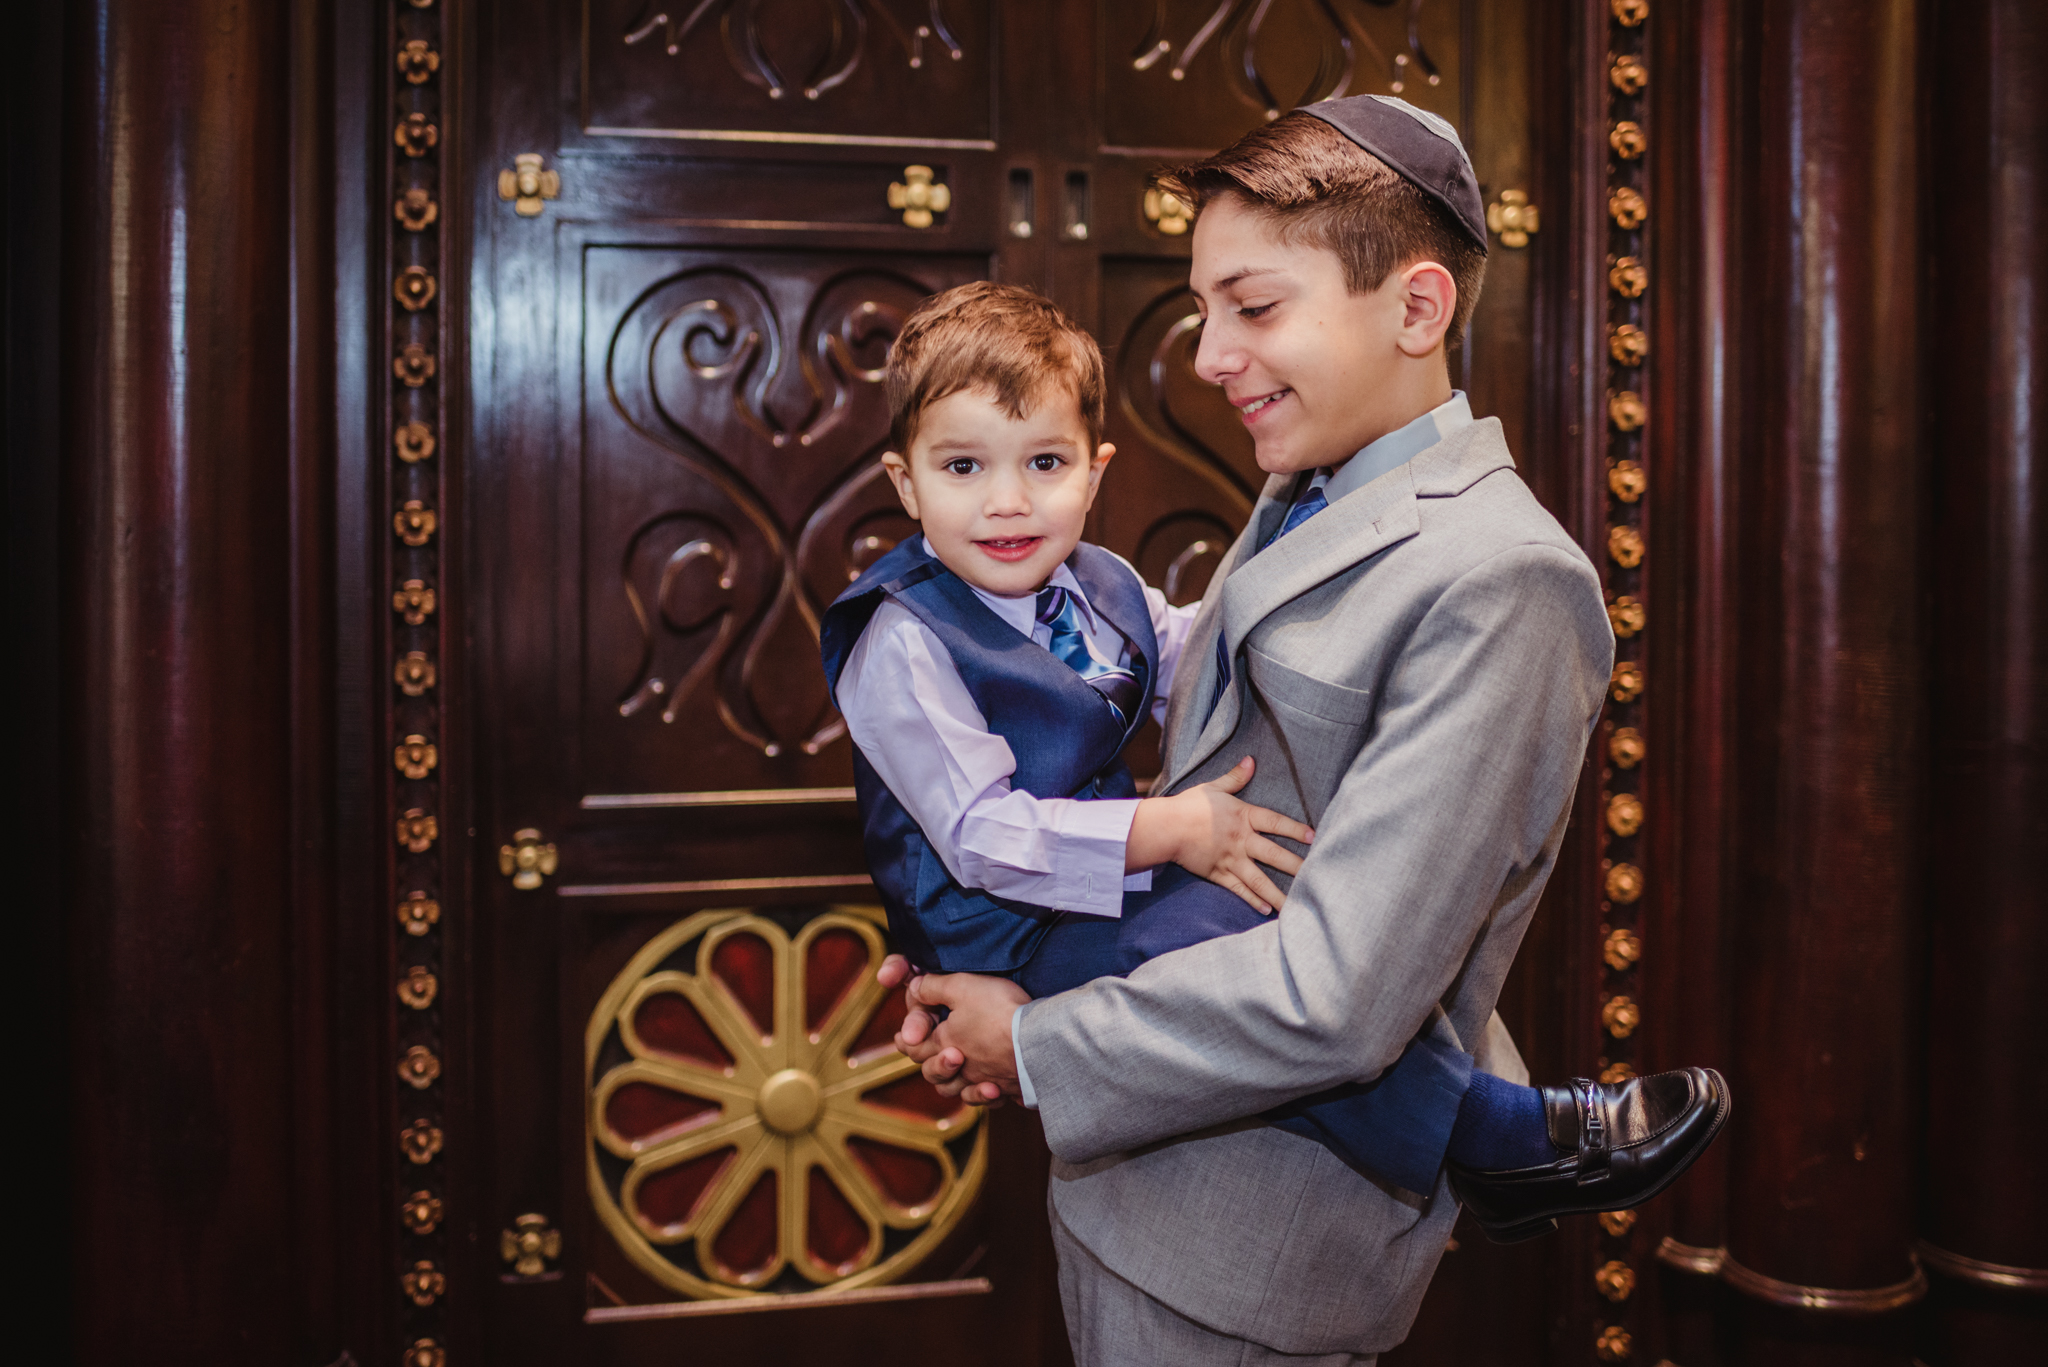 The bar mitzvah boy poses in front of the ark with his younger brother at Temple Beth Or in Raleigh.